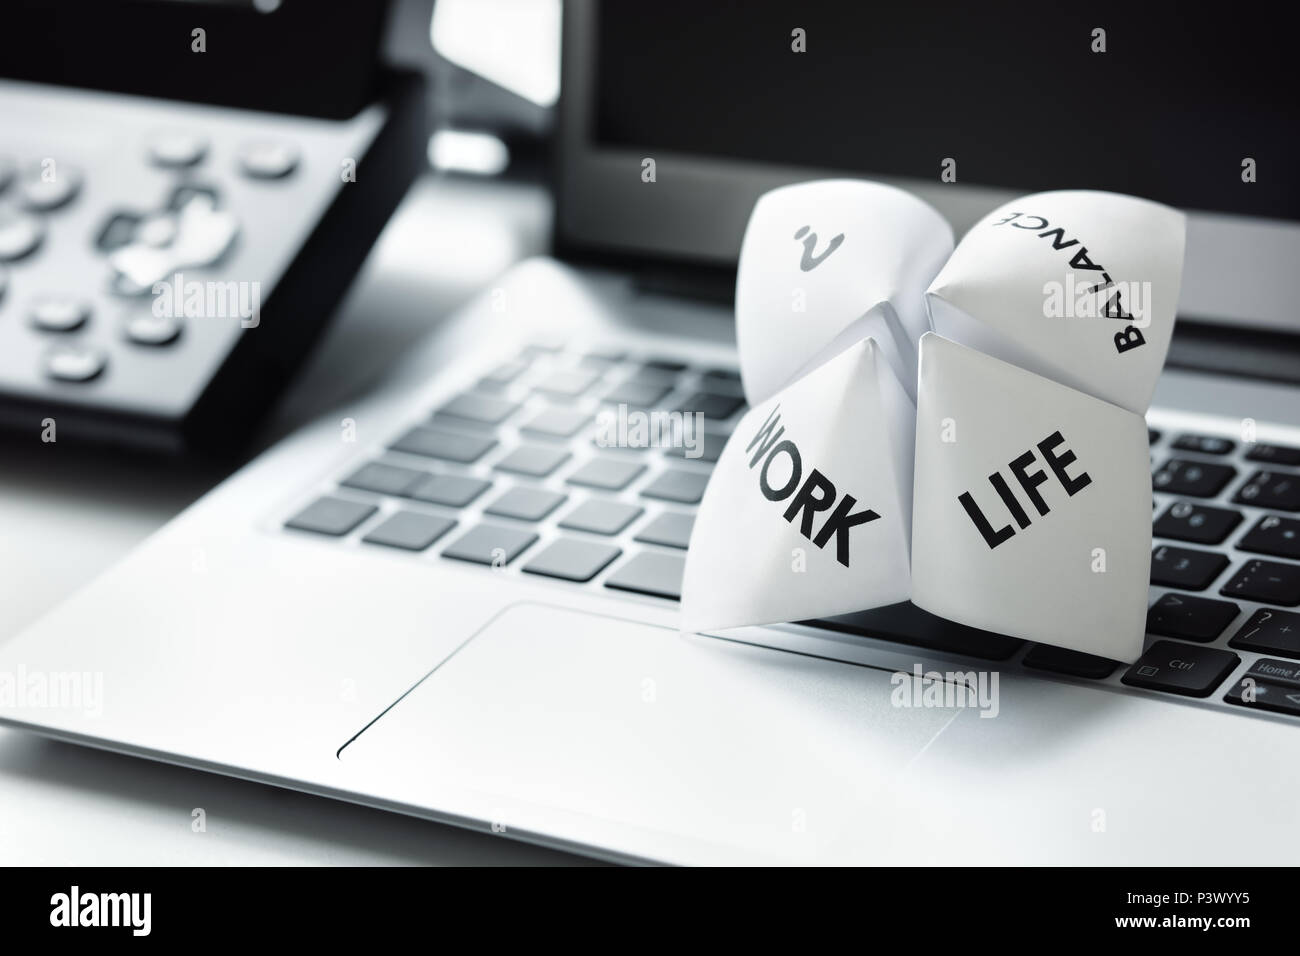 Origami fortune teller on laptop in office concept for work life balance choices - Stock Image